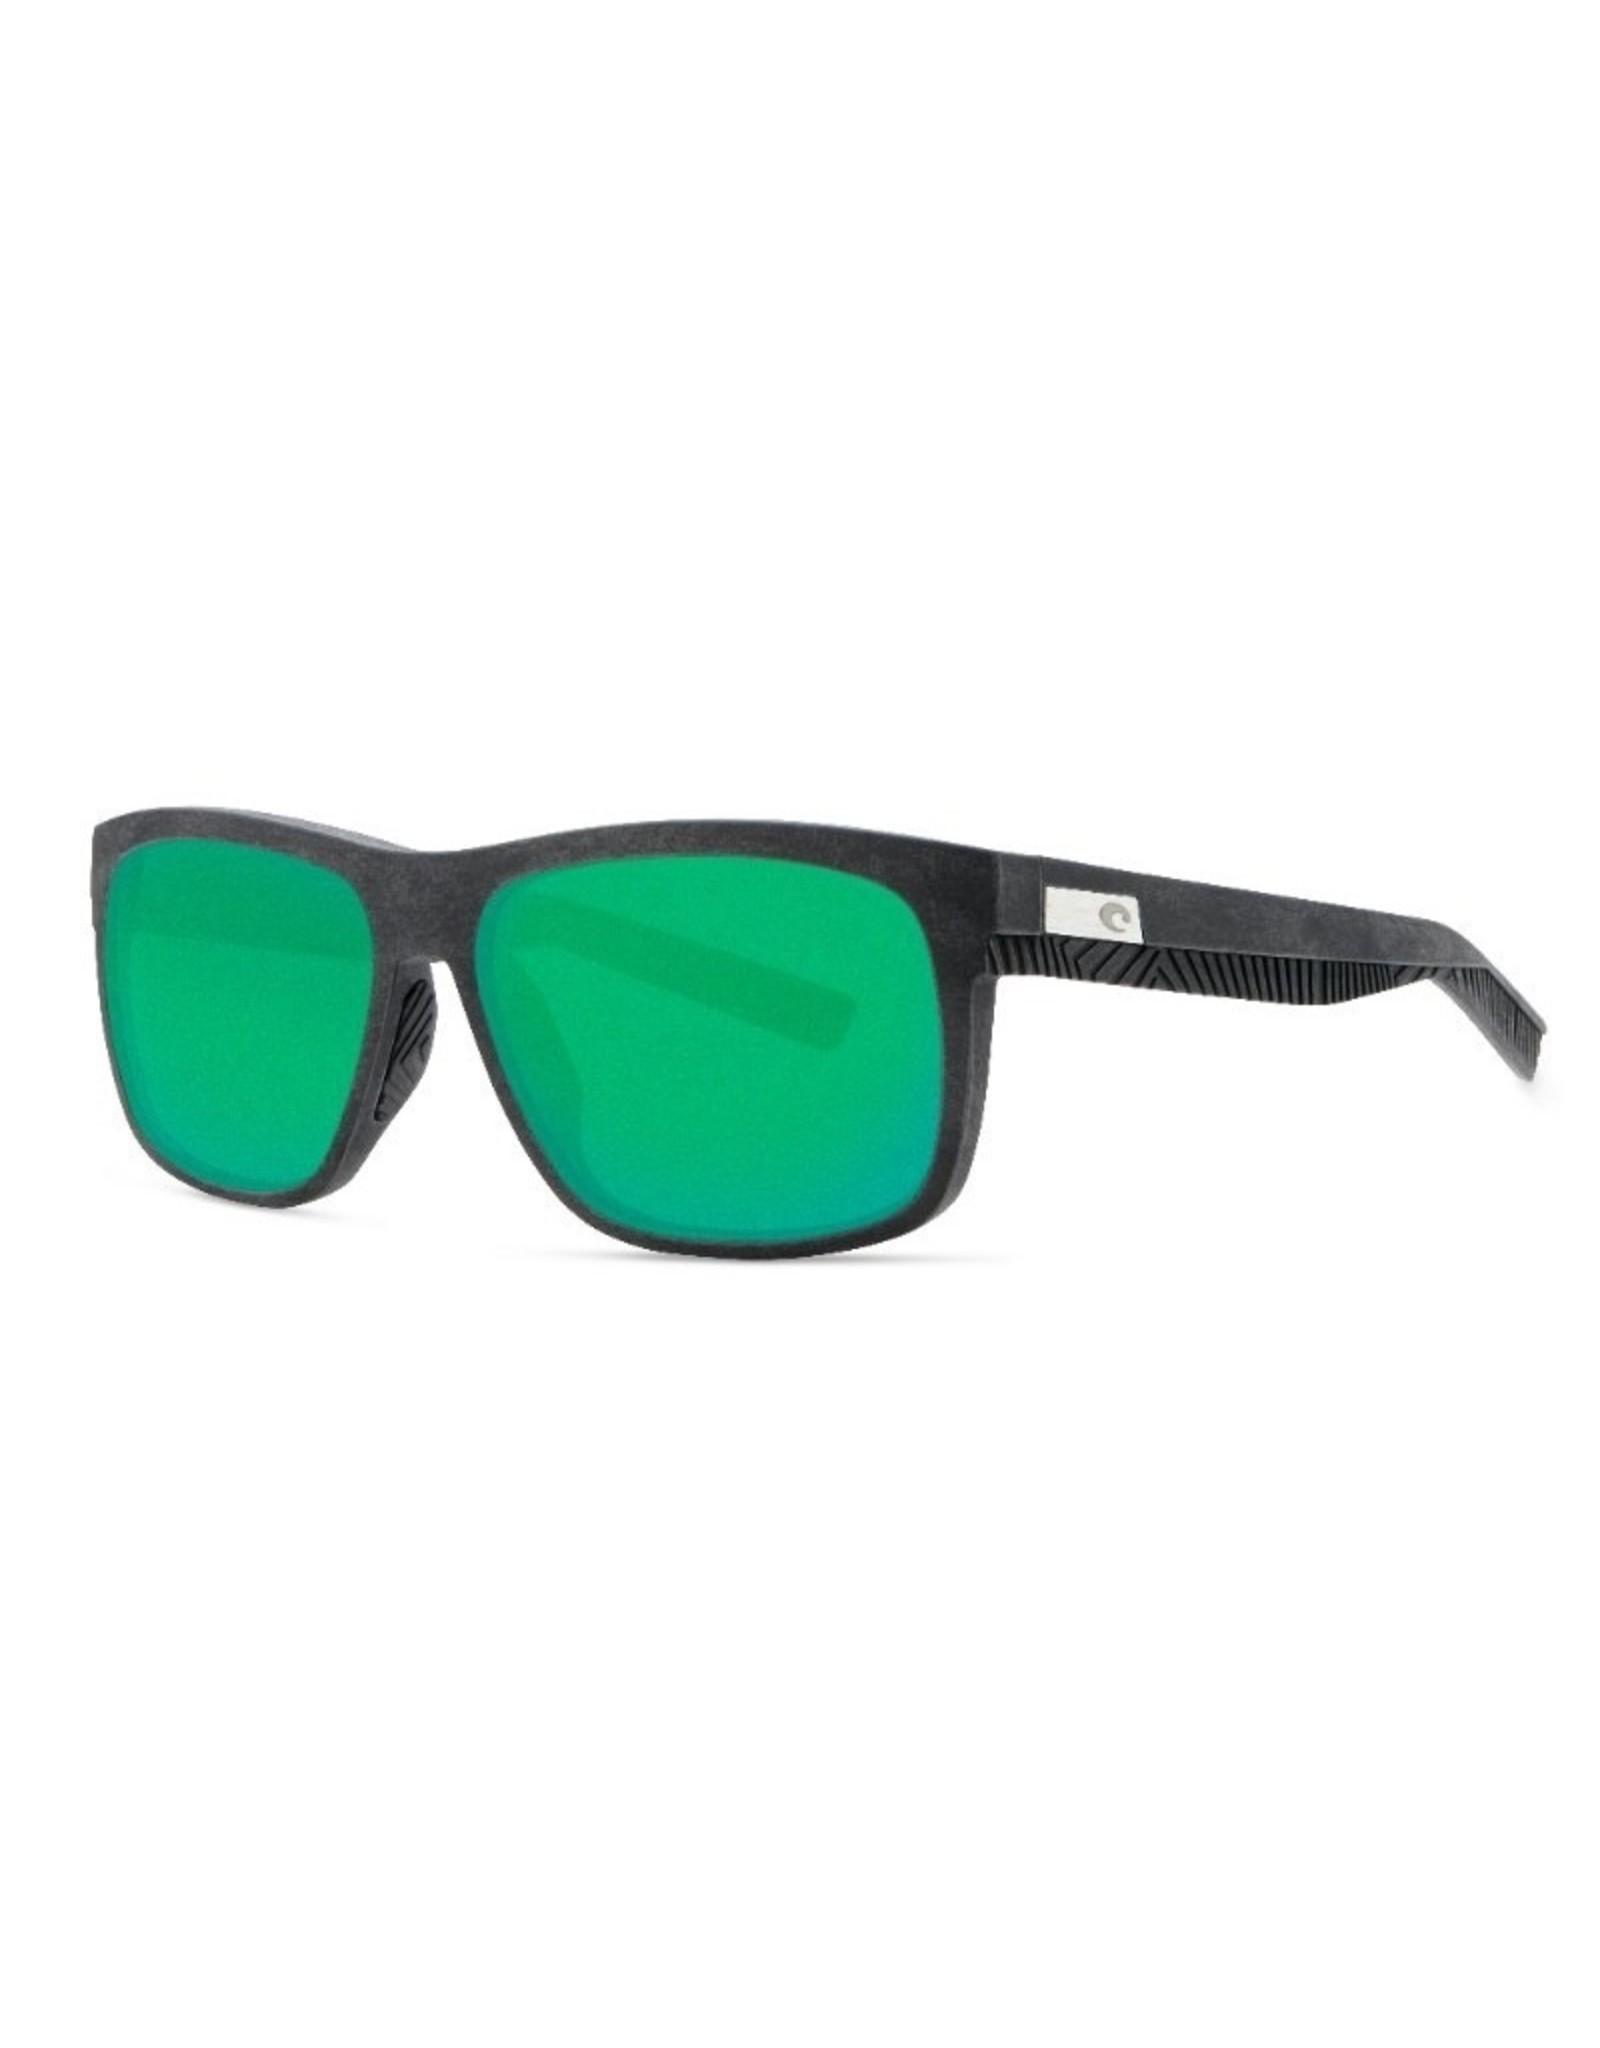 COSTA Baffin (580G Green Mirror) Gray with Black Rubber Frame